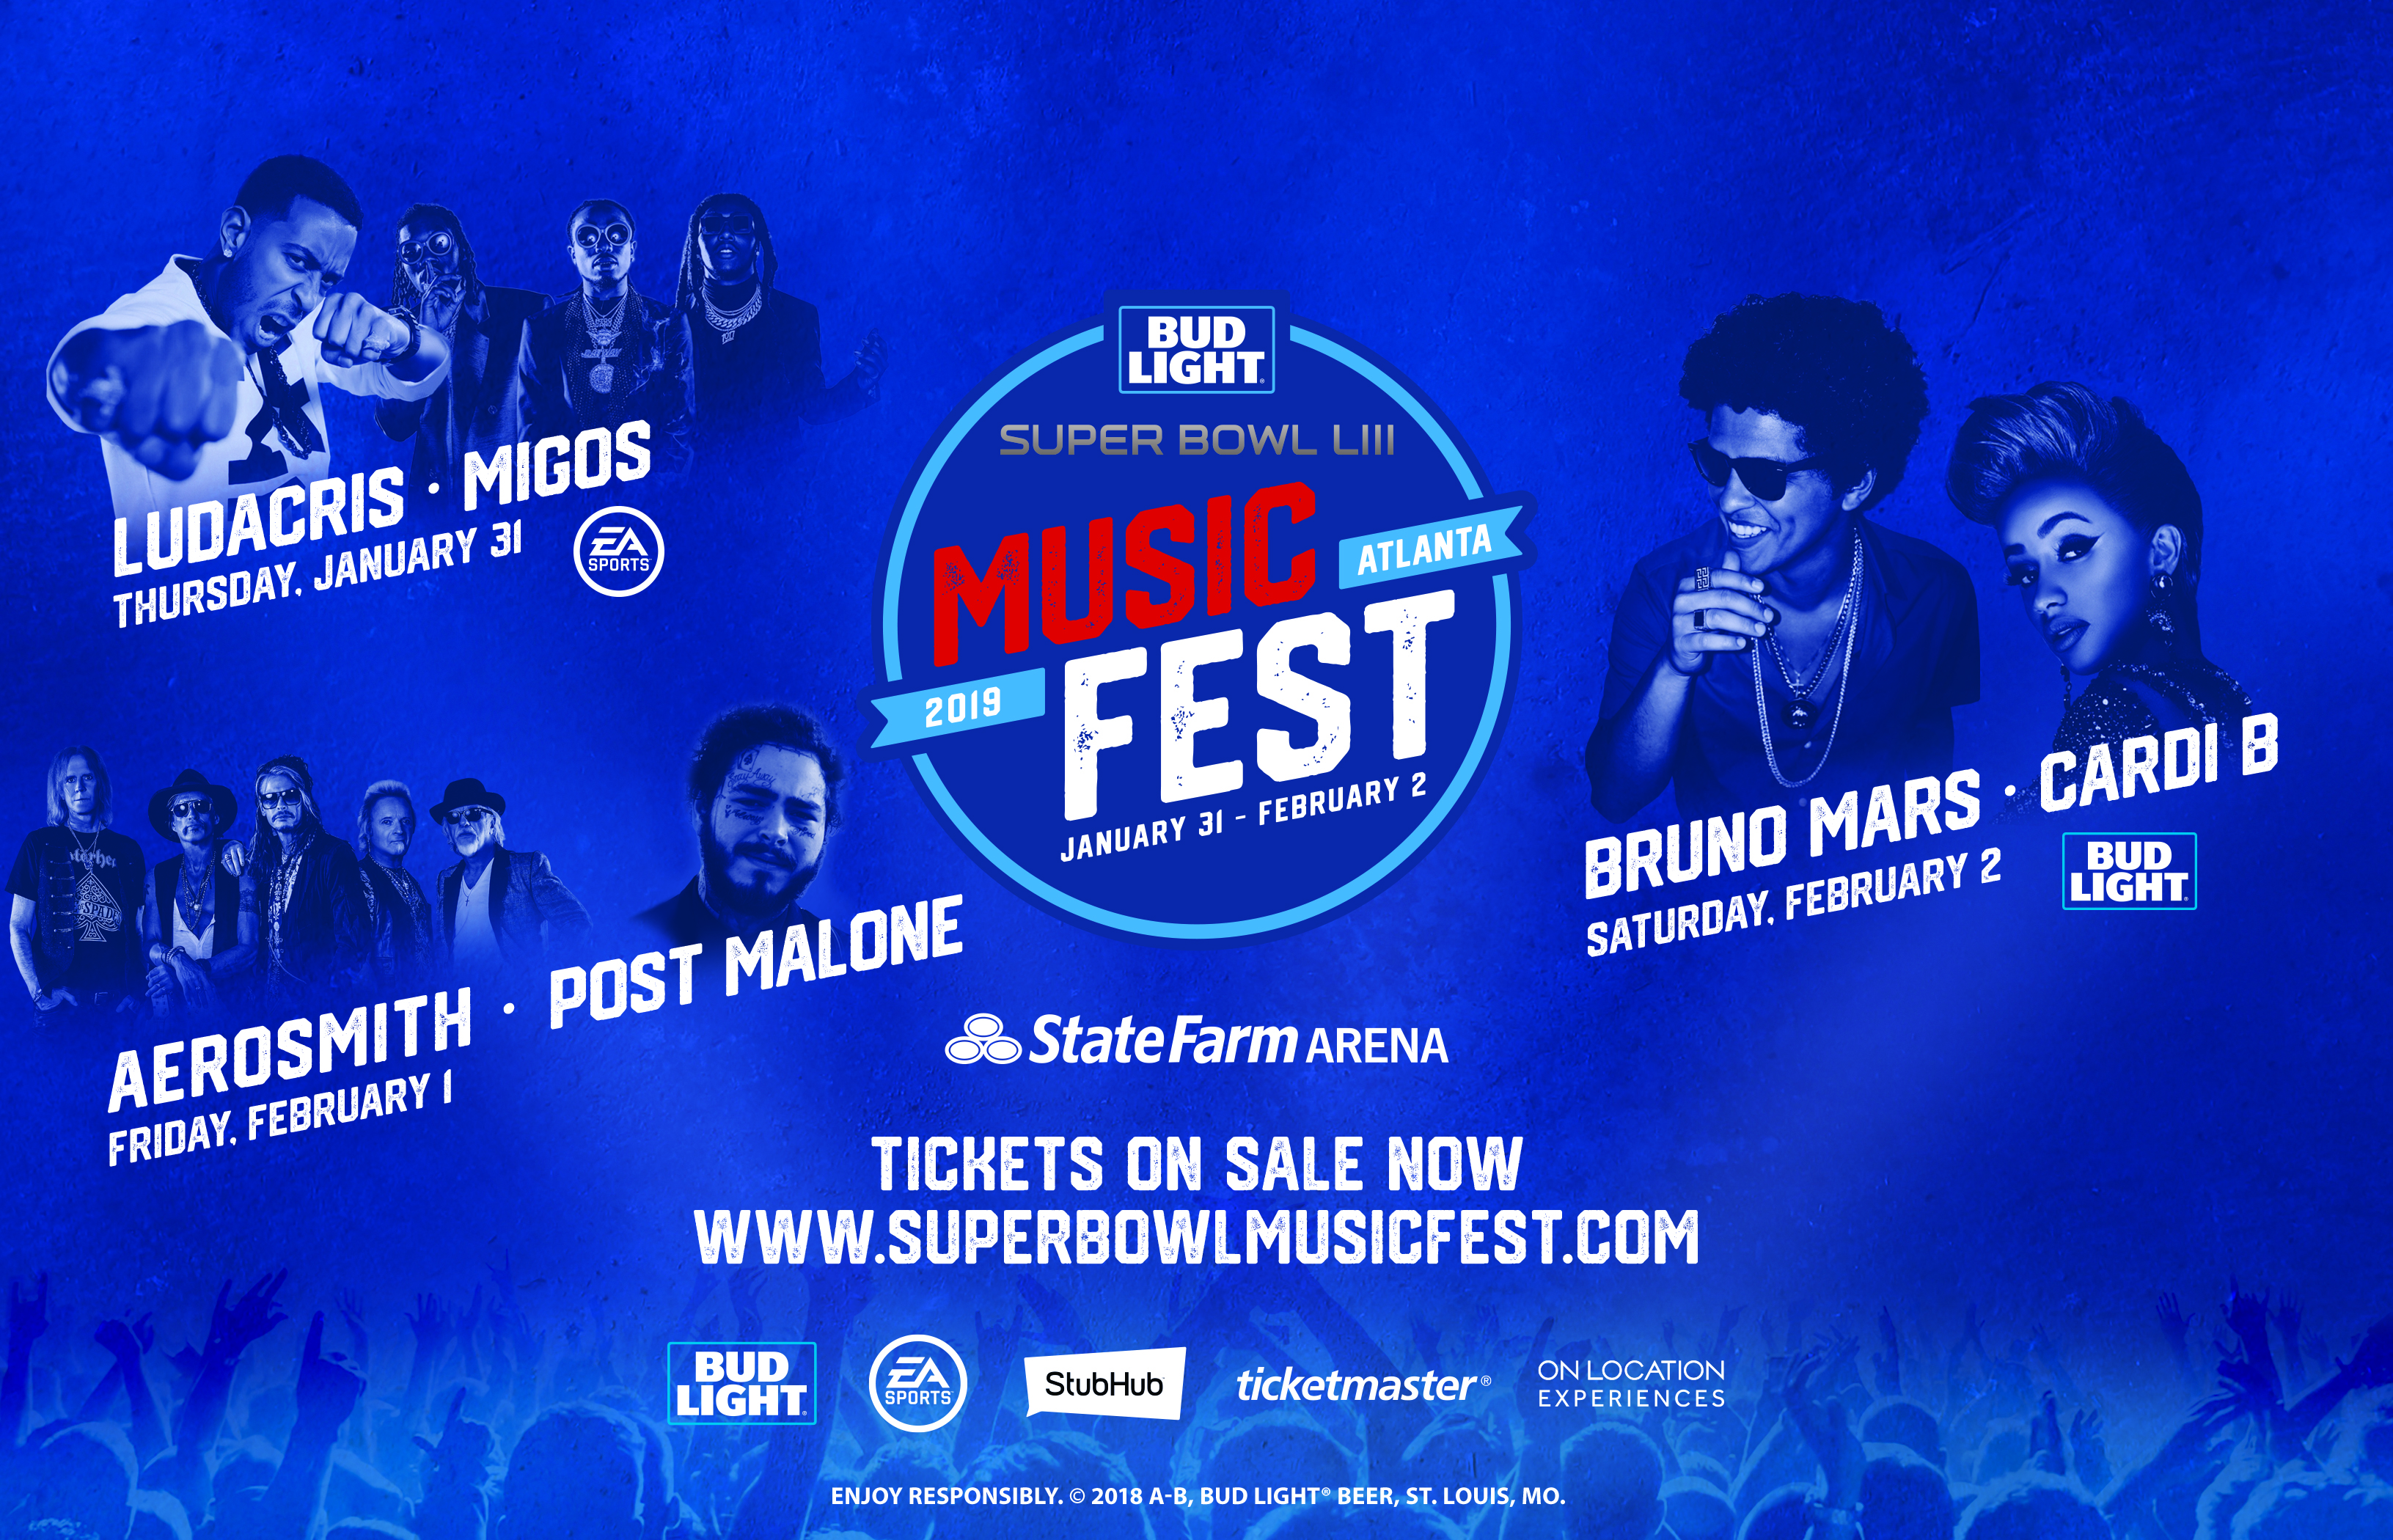 First Ever Bud Light Music Festival Brings The Biggest Names